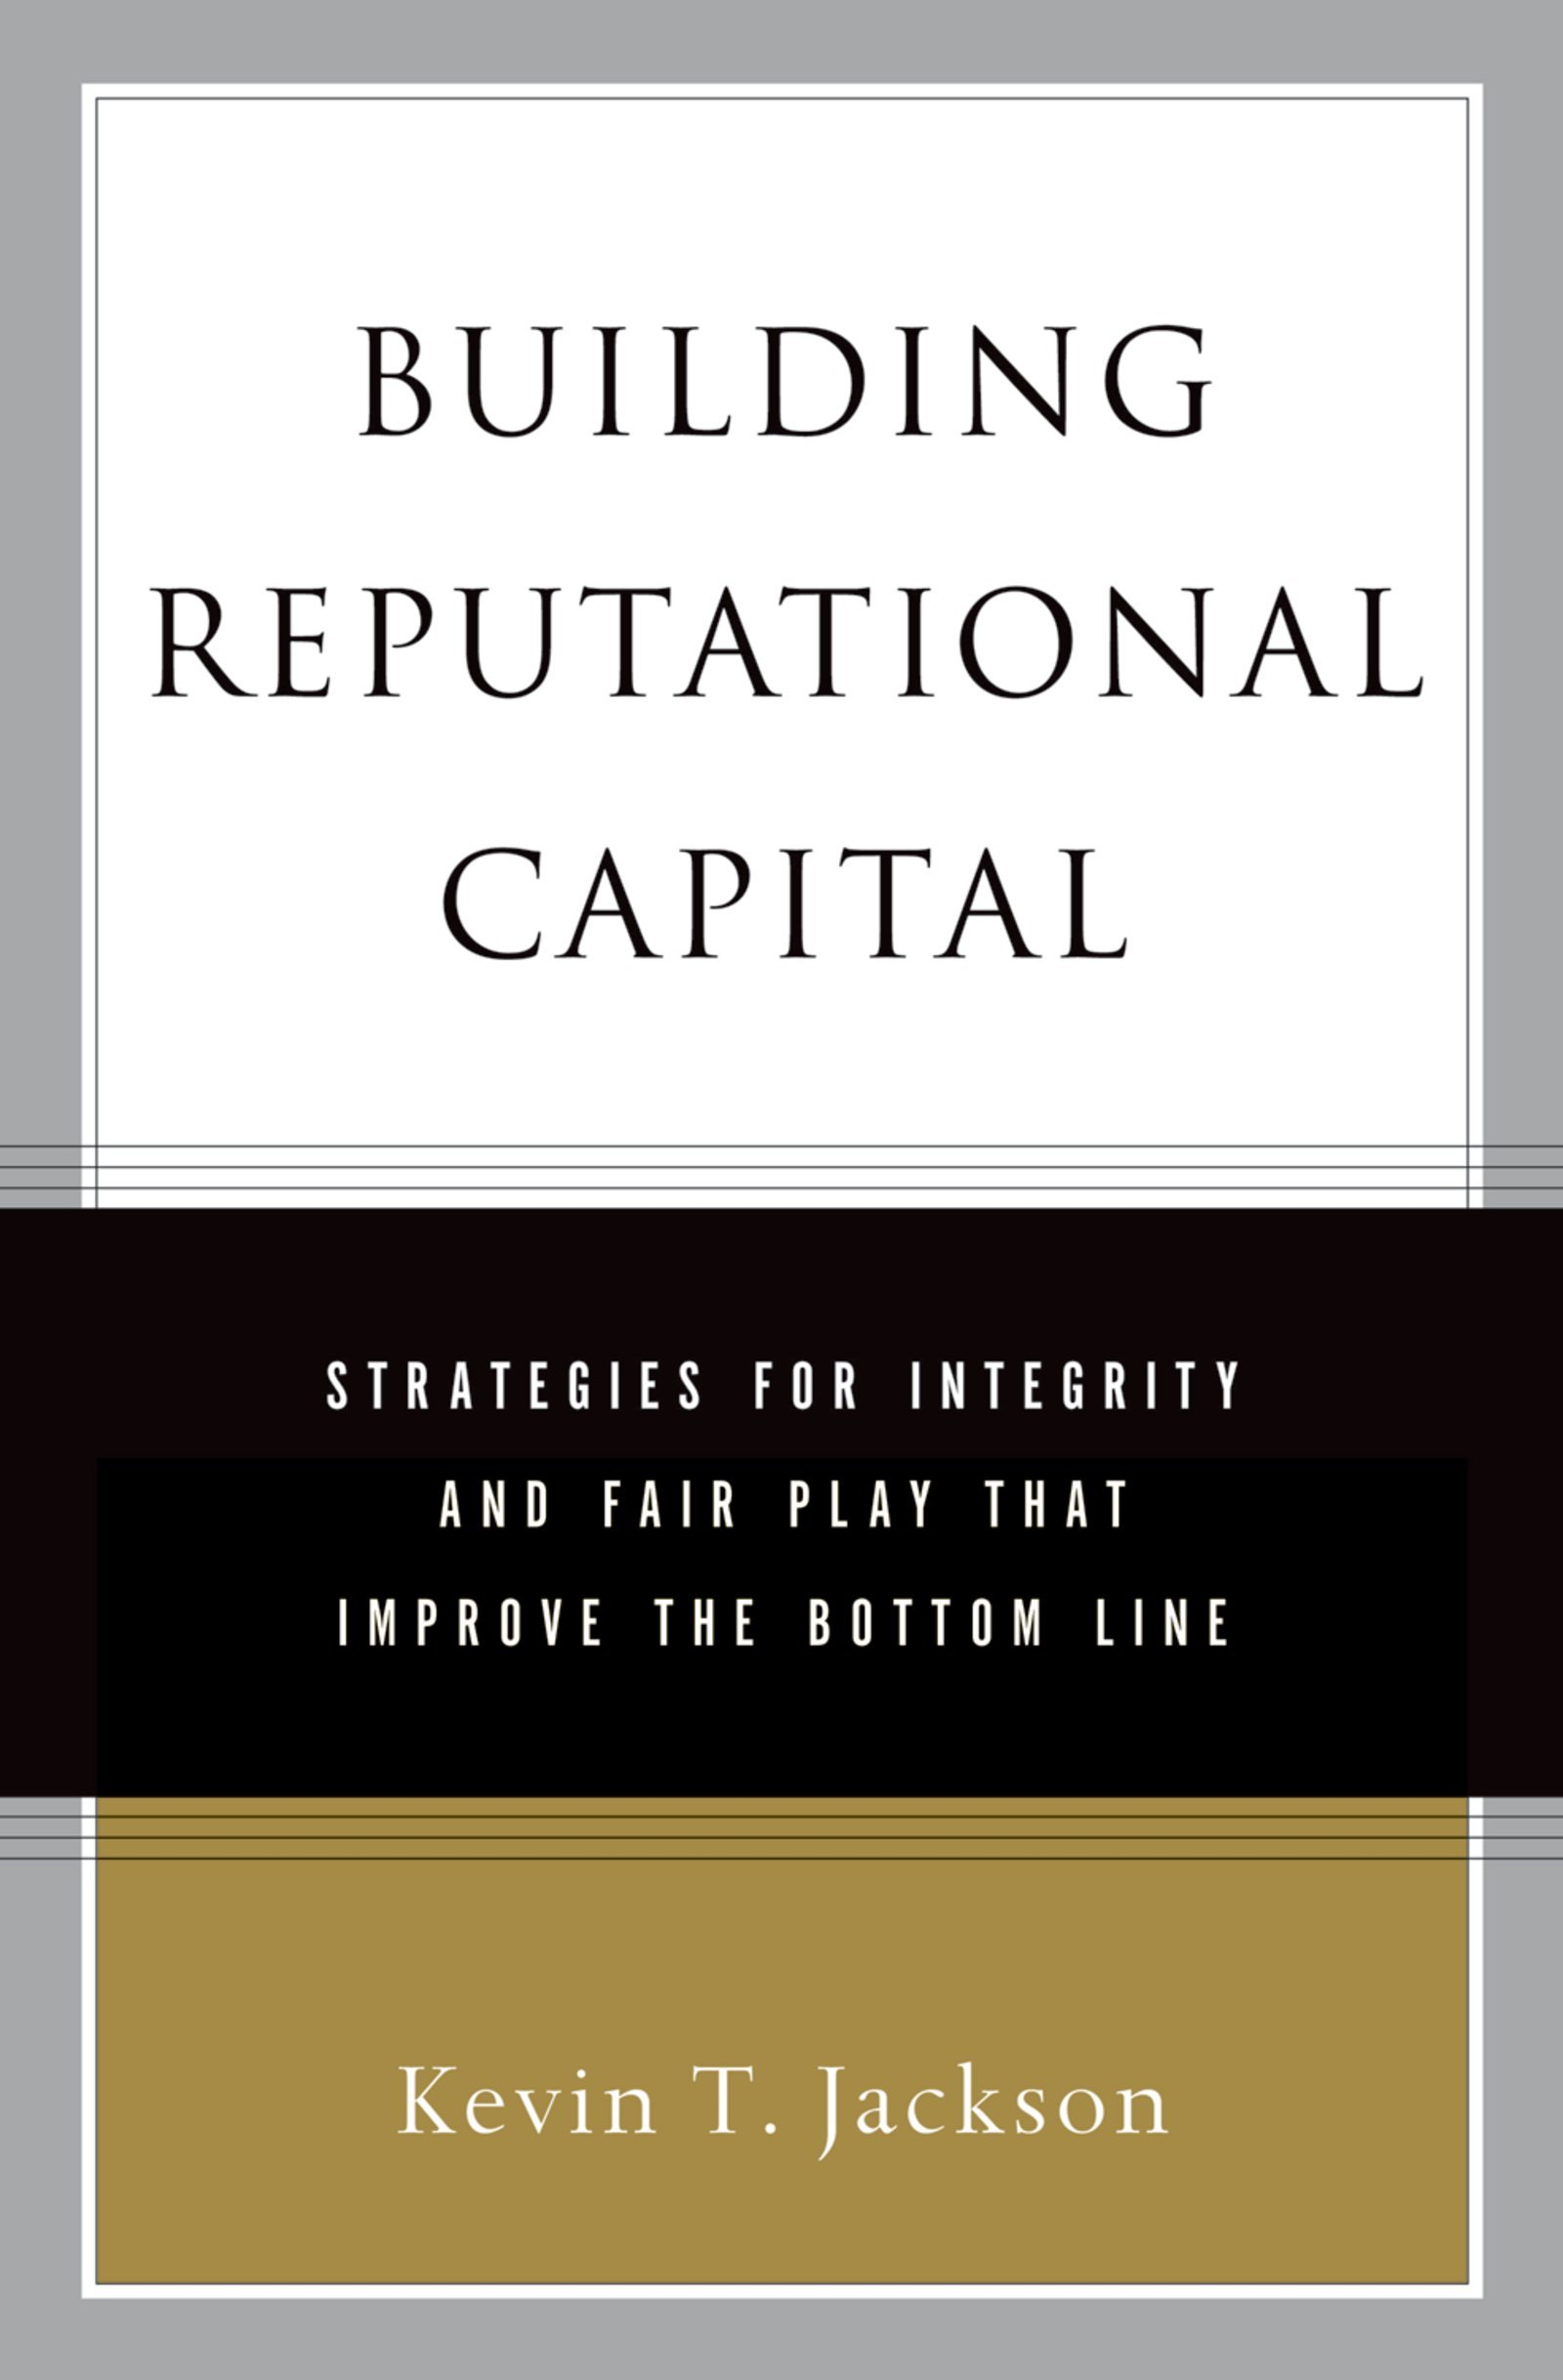 Image OfBuilding Reputational Capital: Strategies For Integrity And Fair Play That Improve The Bottom Line (English Edition)